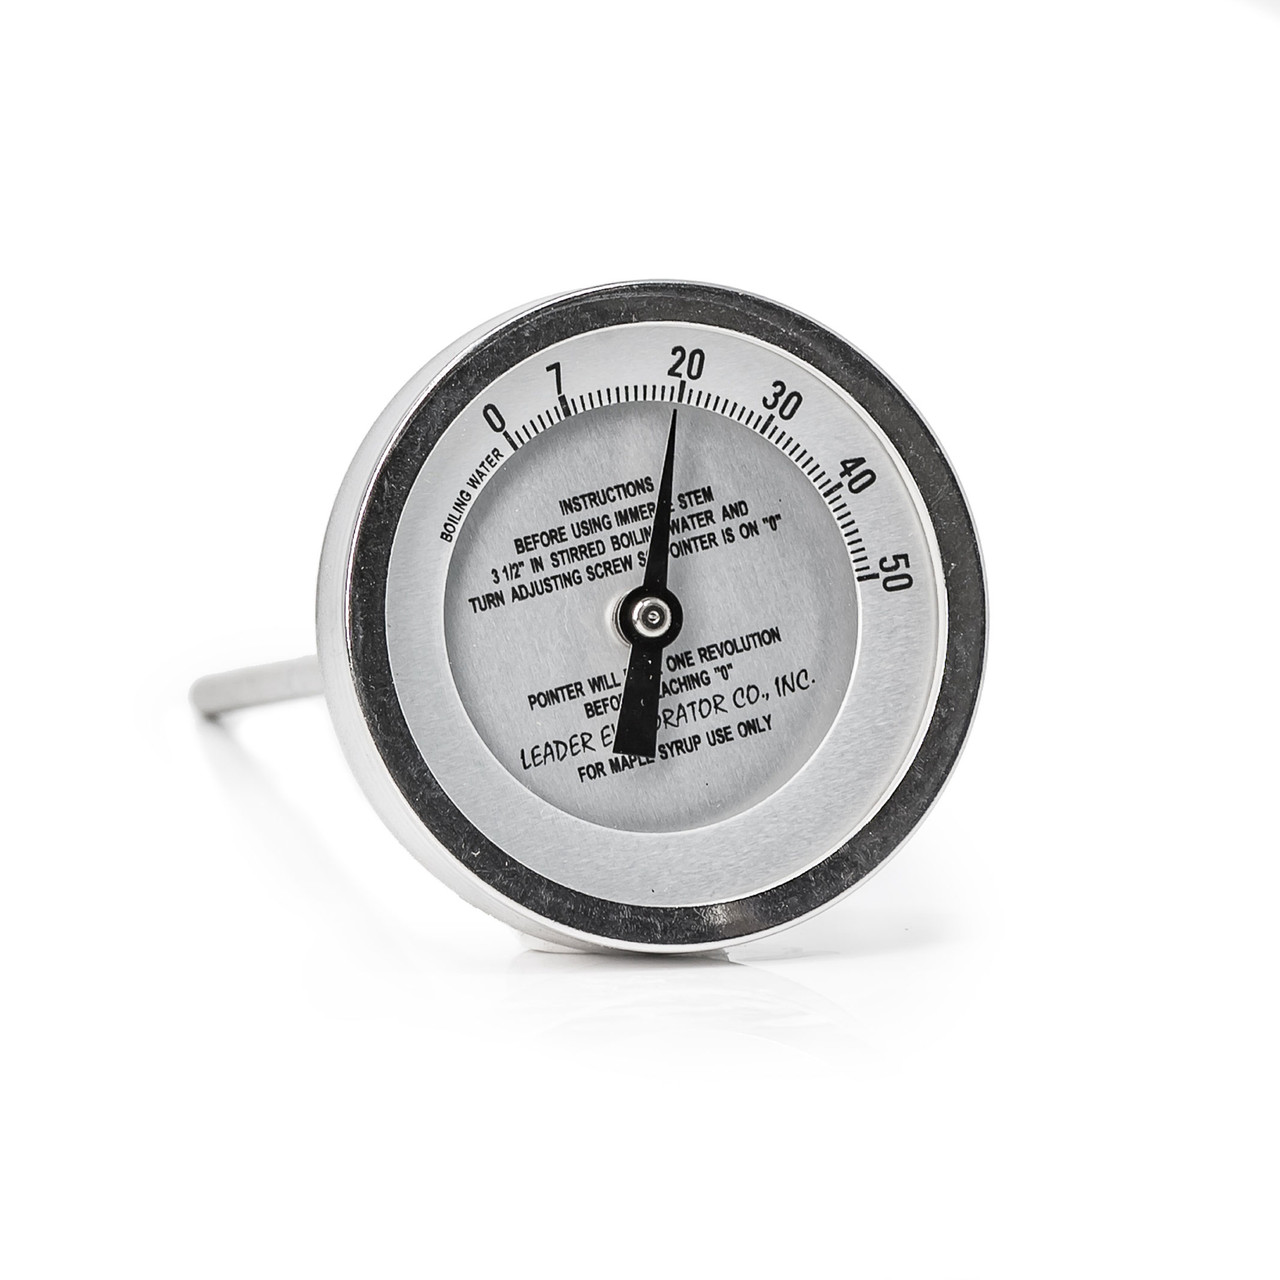 Dial Thermometers For Maple Syrup